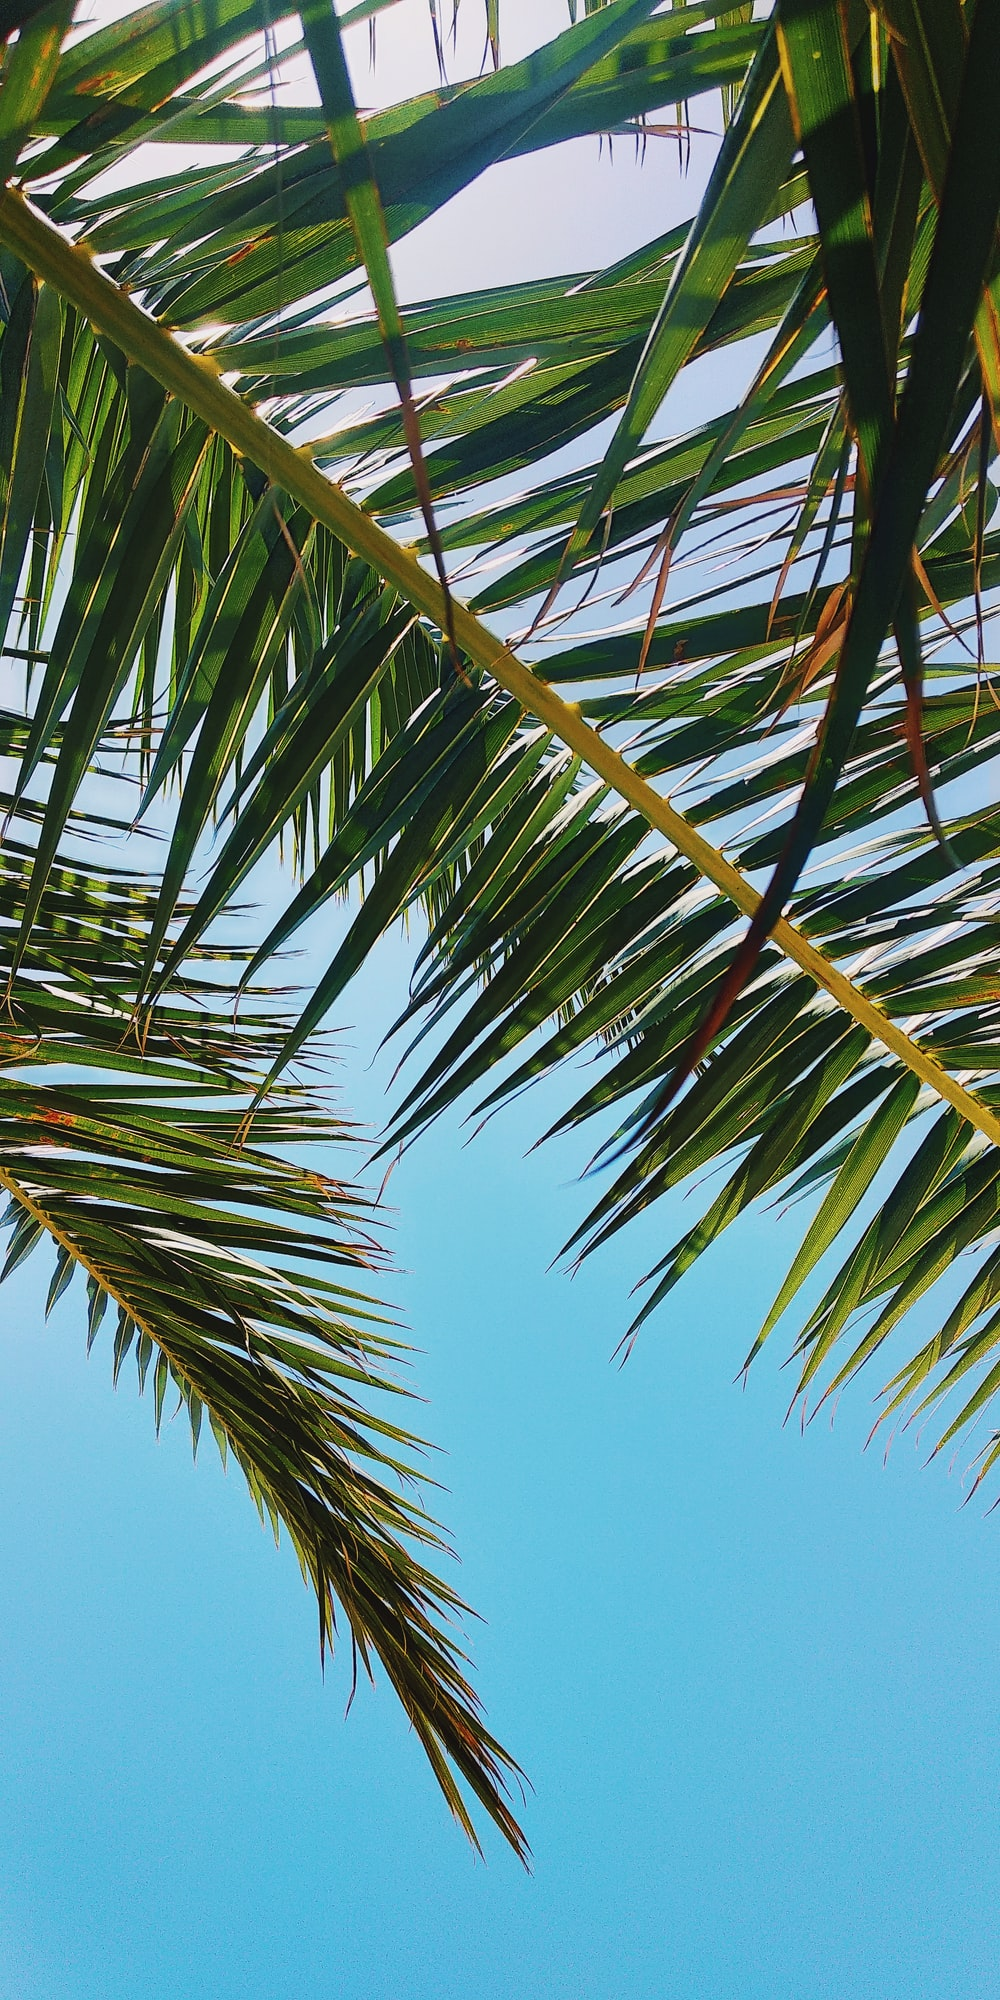 green palm tree under blue sky during daytime